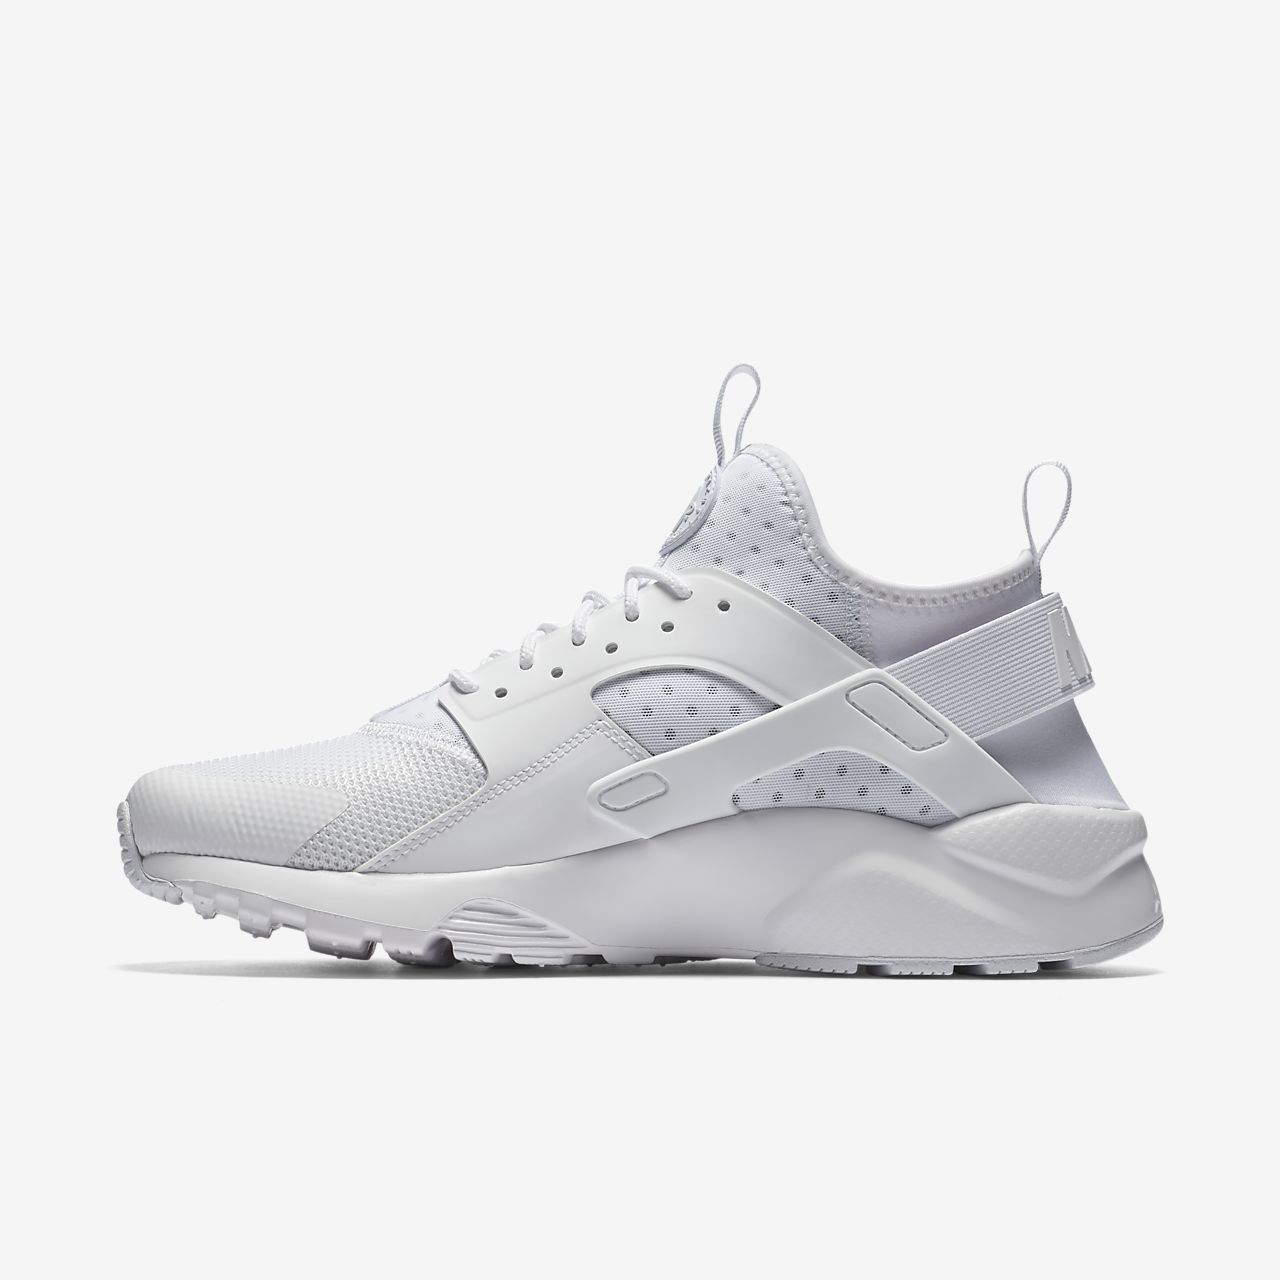 low priced fd5c4 0fb0d ... Calzado para hombre Nike Air Huarache Ultra